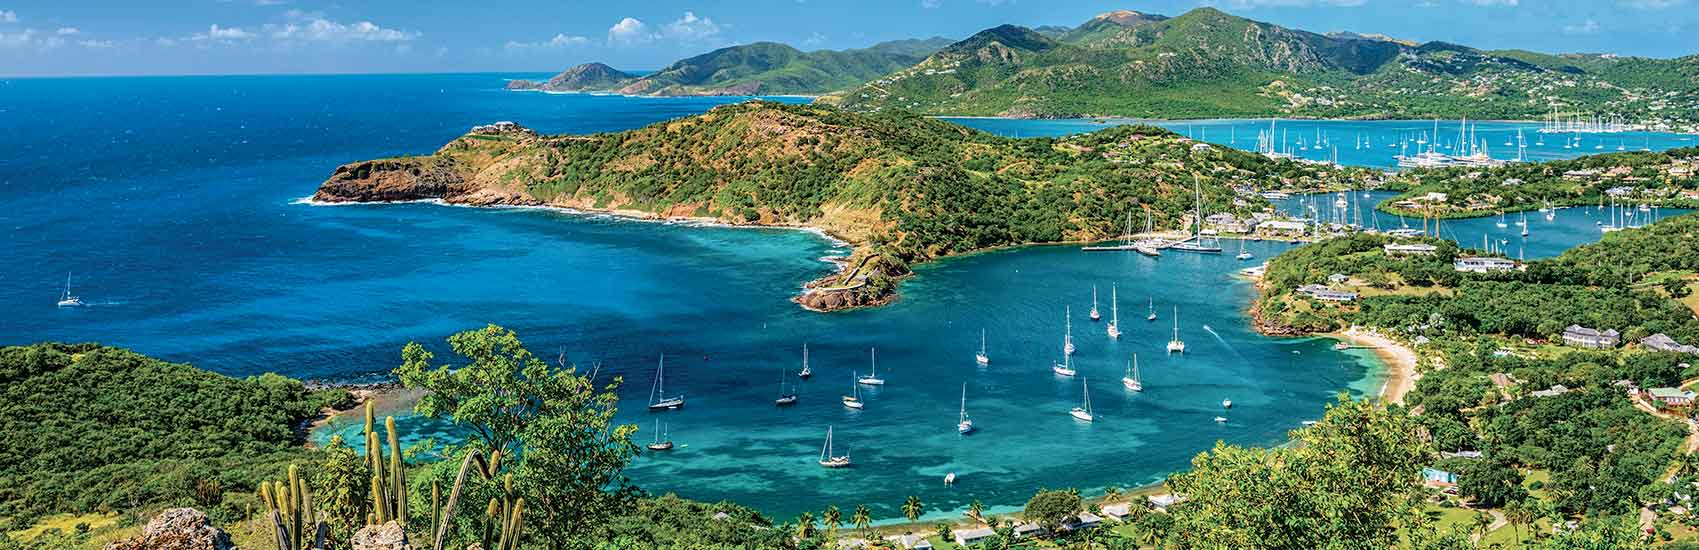 Set Sail to the Caribbean with Seabourn 2